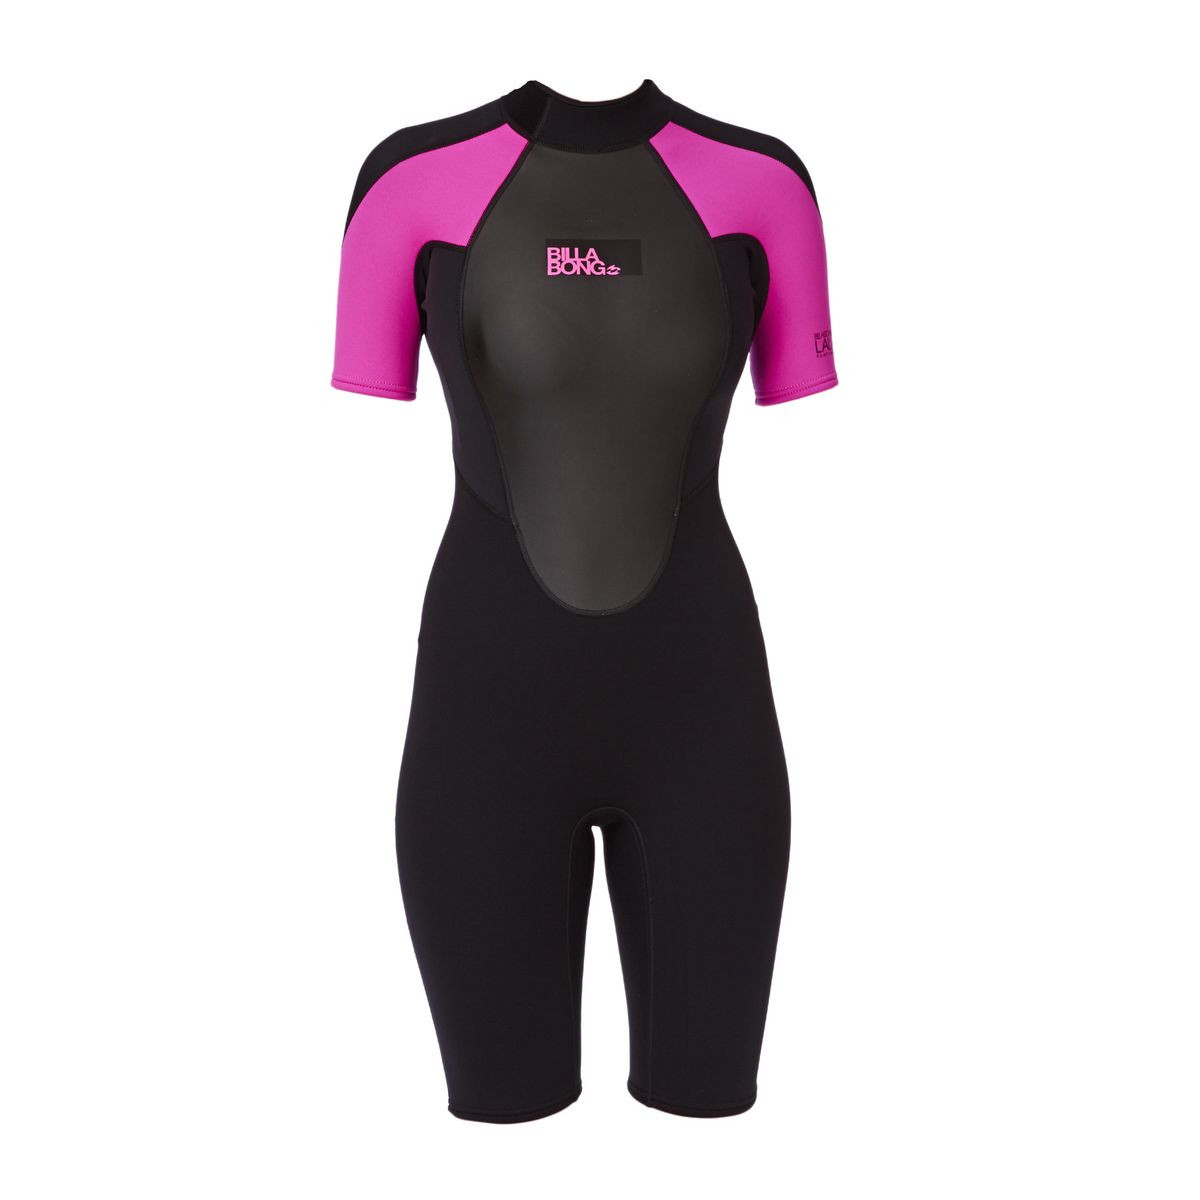 Billabong Launch 2mm Back Zip Shorty Wetsuit - Hot Pink